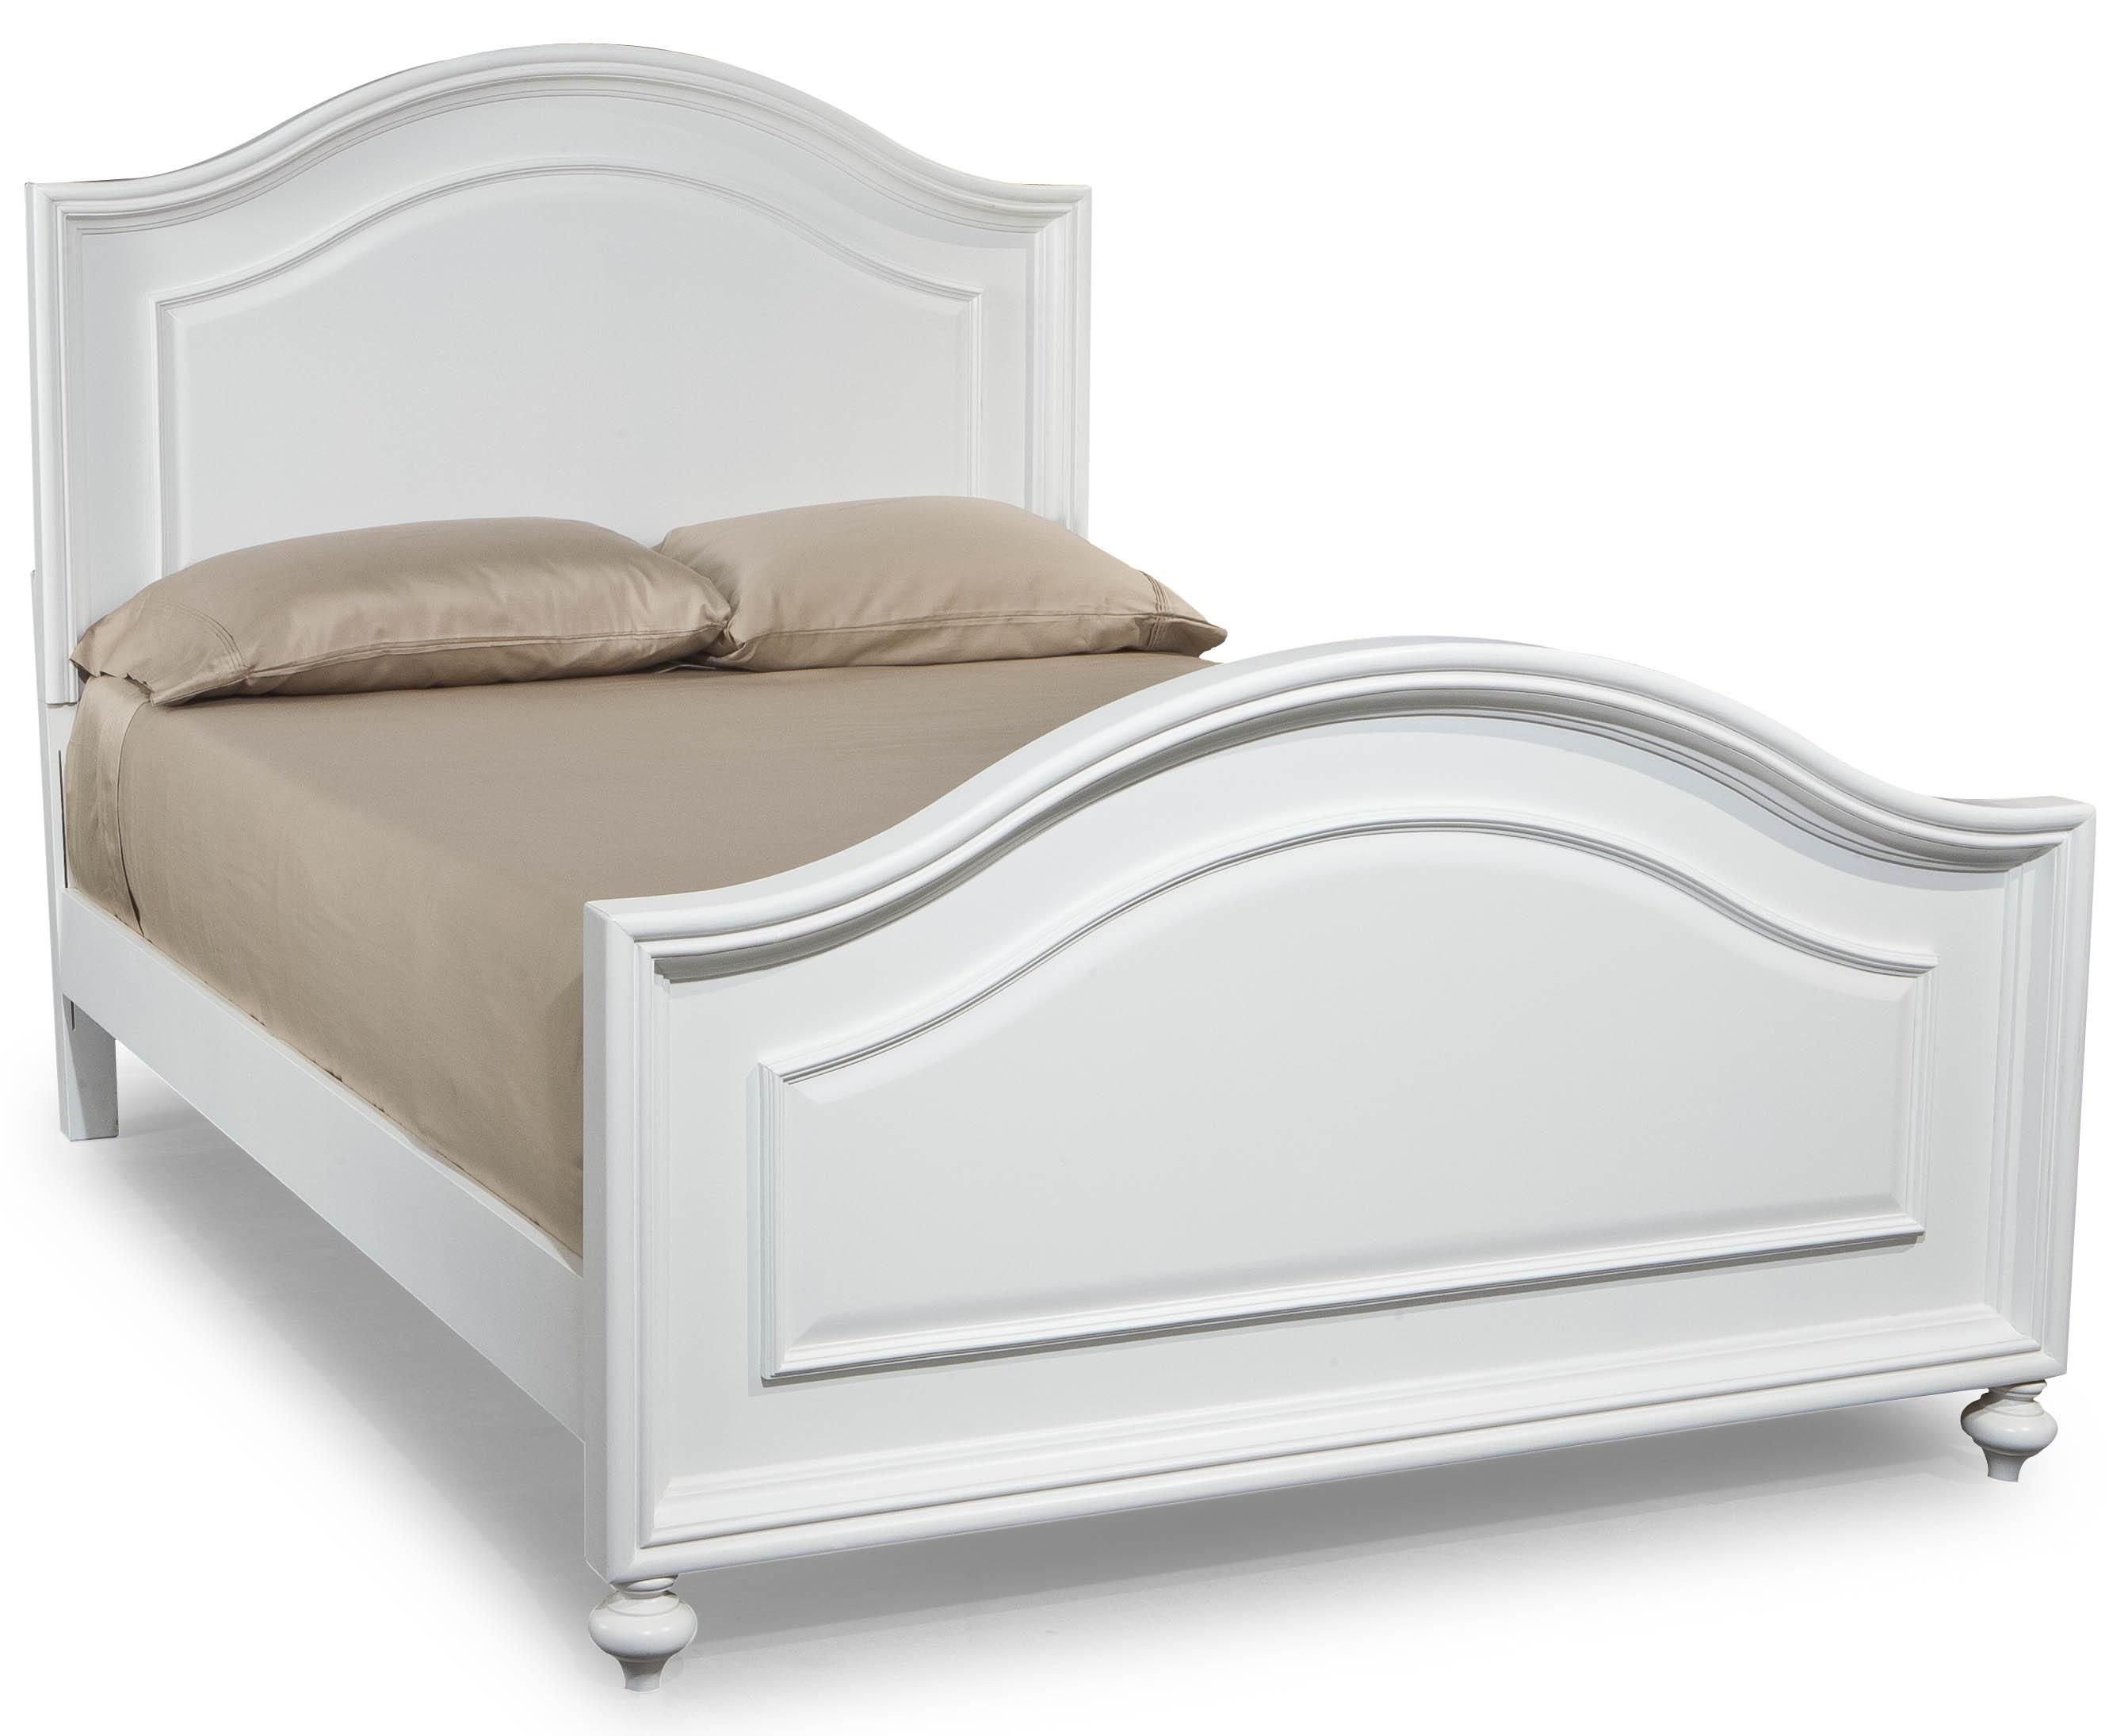 legacy classic kids madison full size arched panel headboard